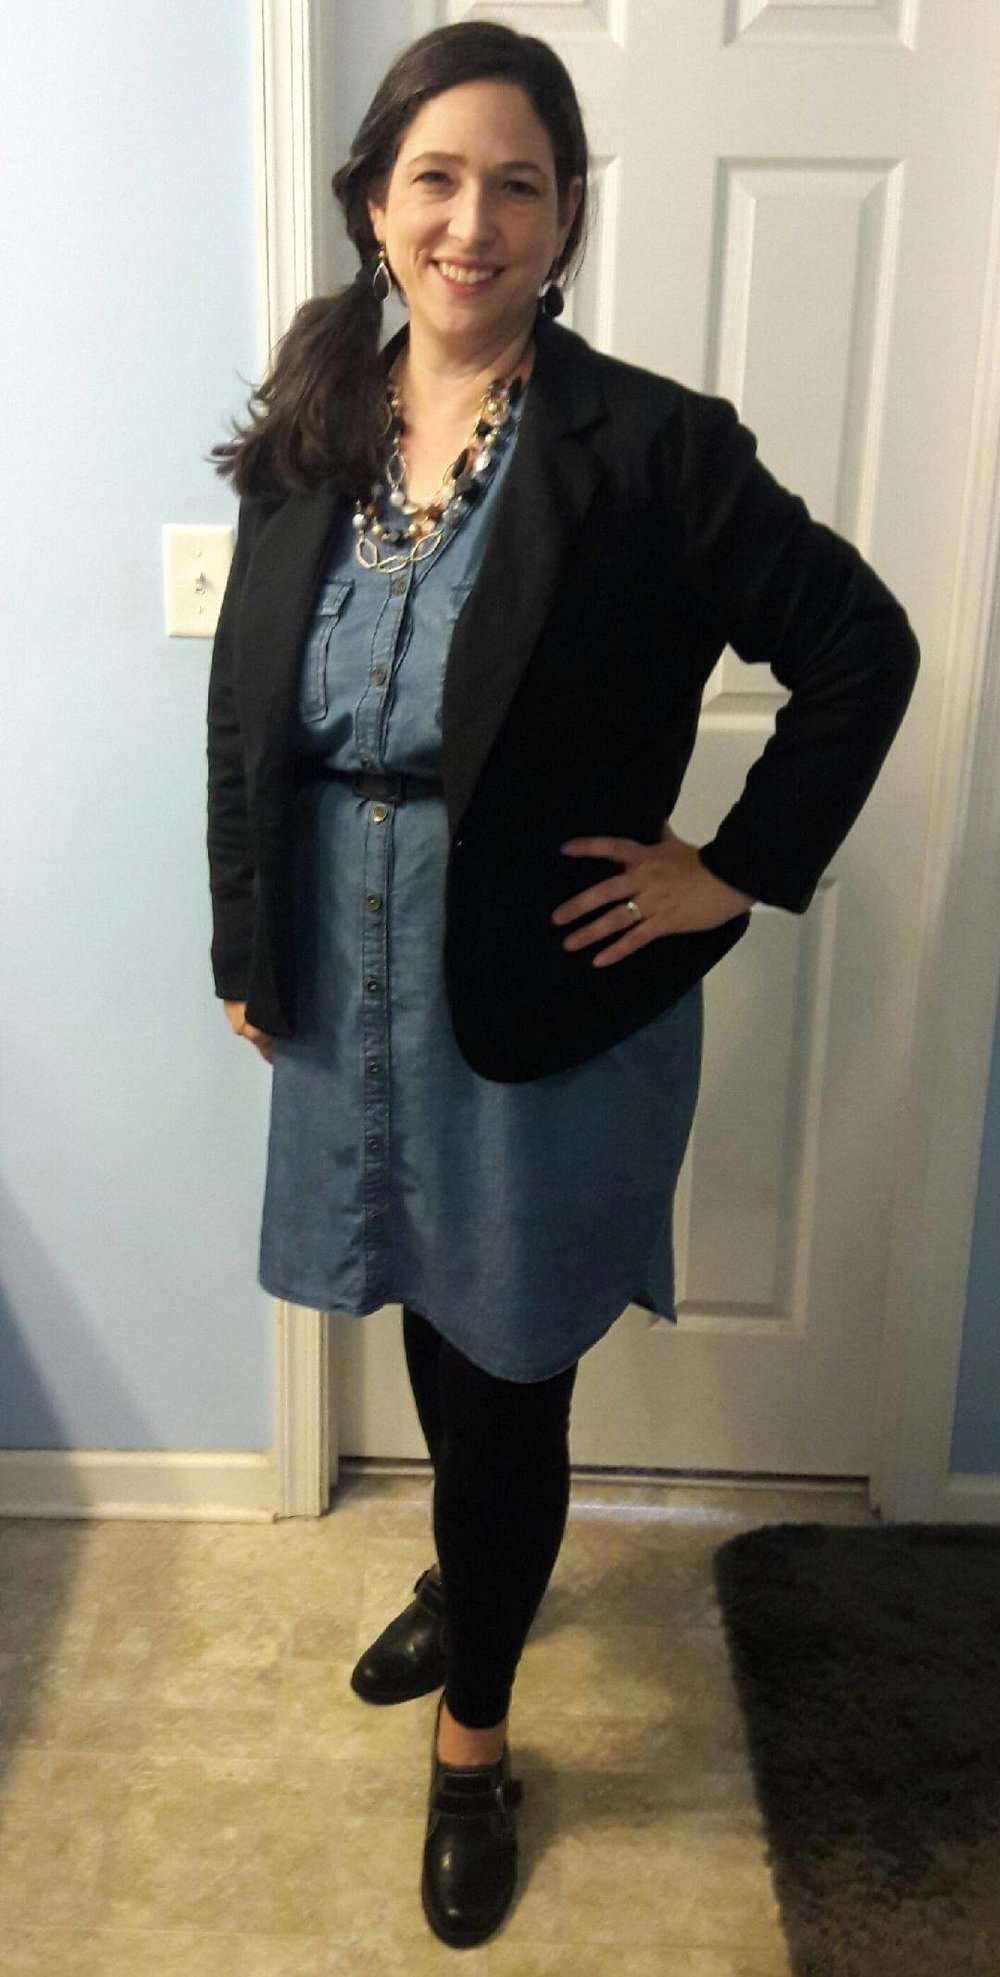 Chambray Dress + Belt + Blazer + Statement Necklace + Leggings + Mules